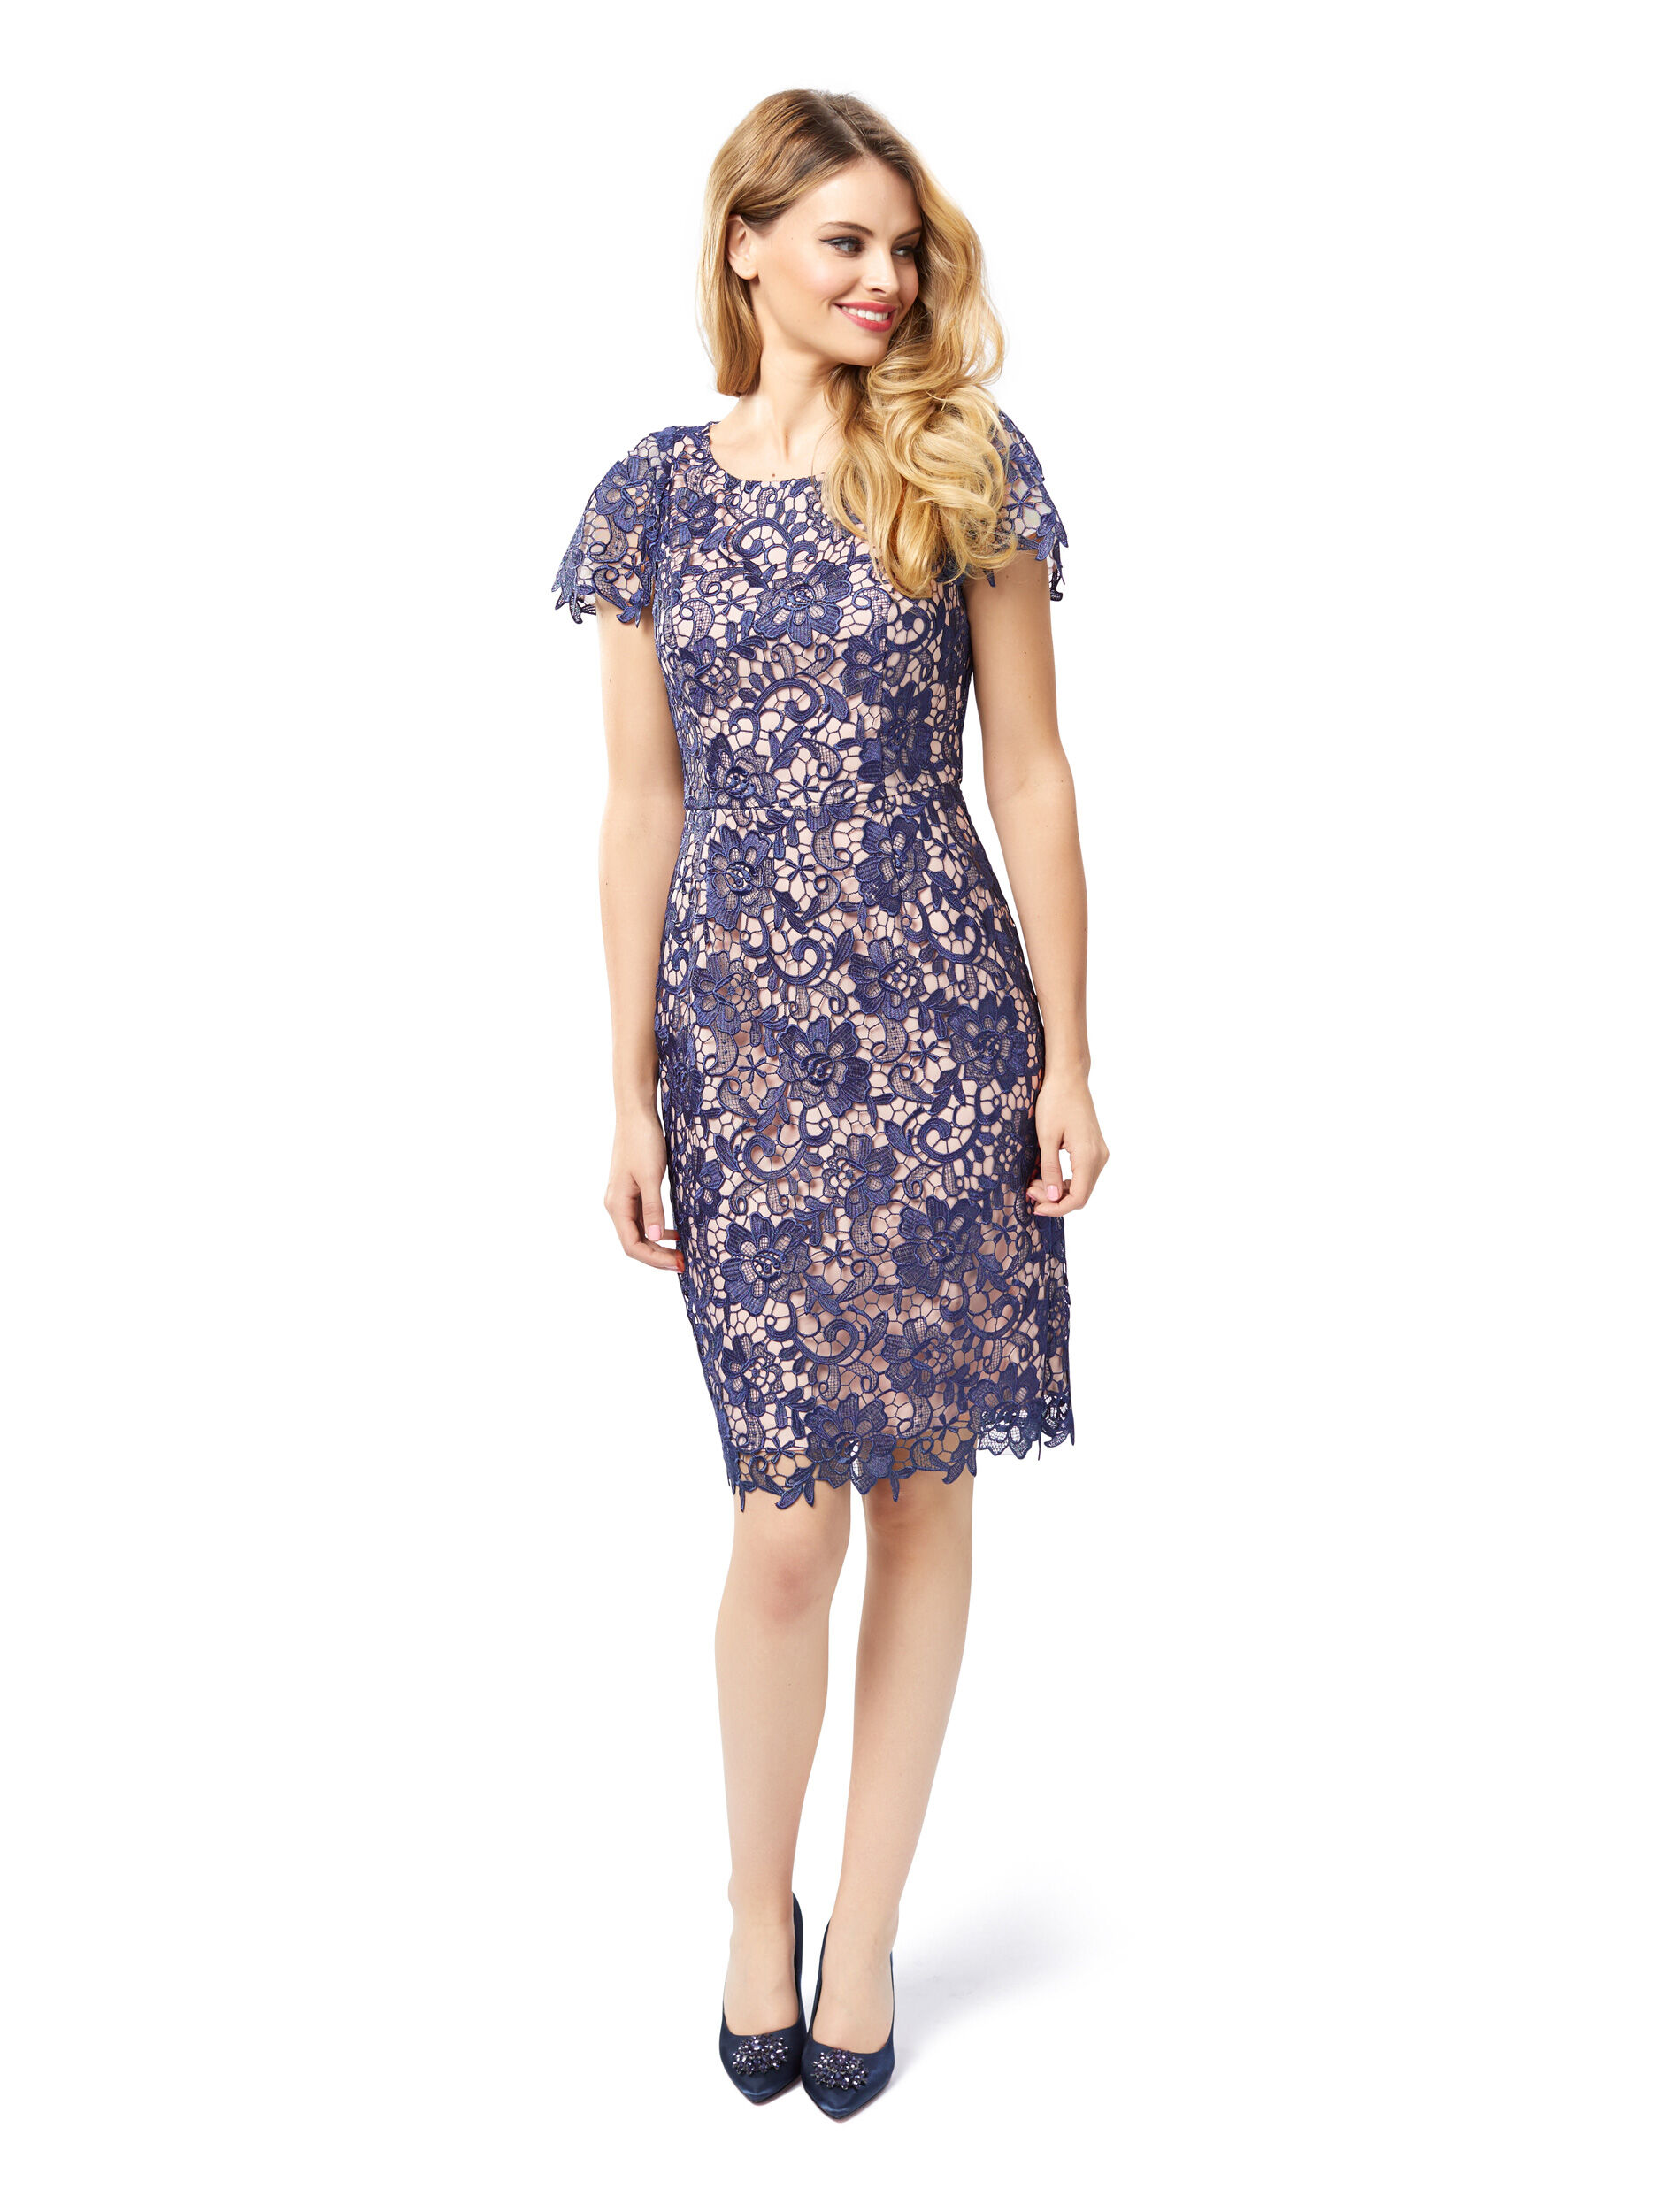 Belleview Dress